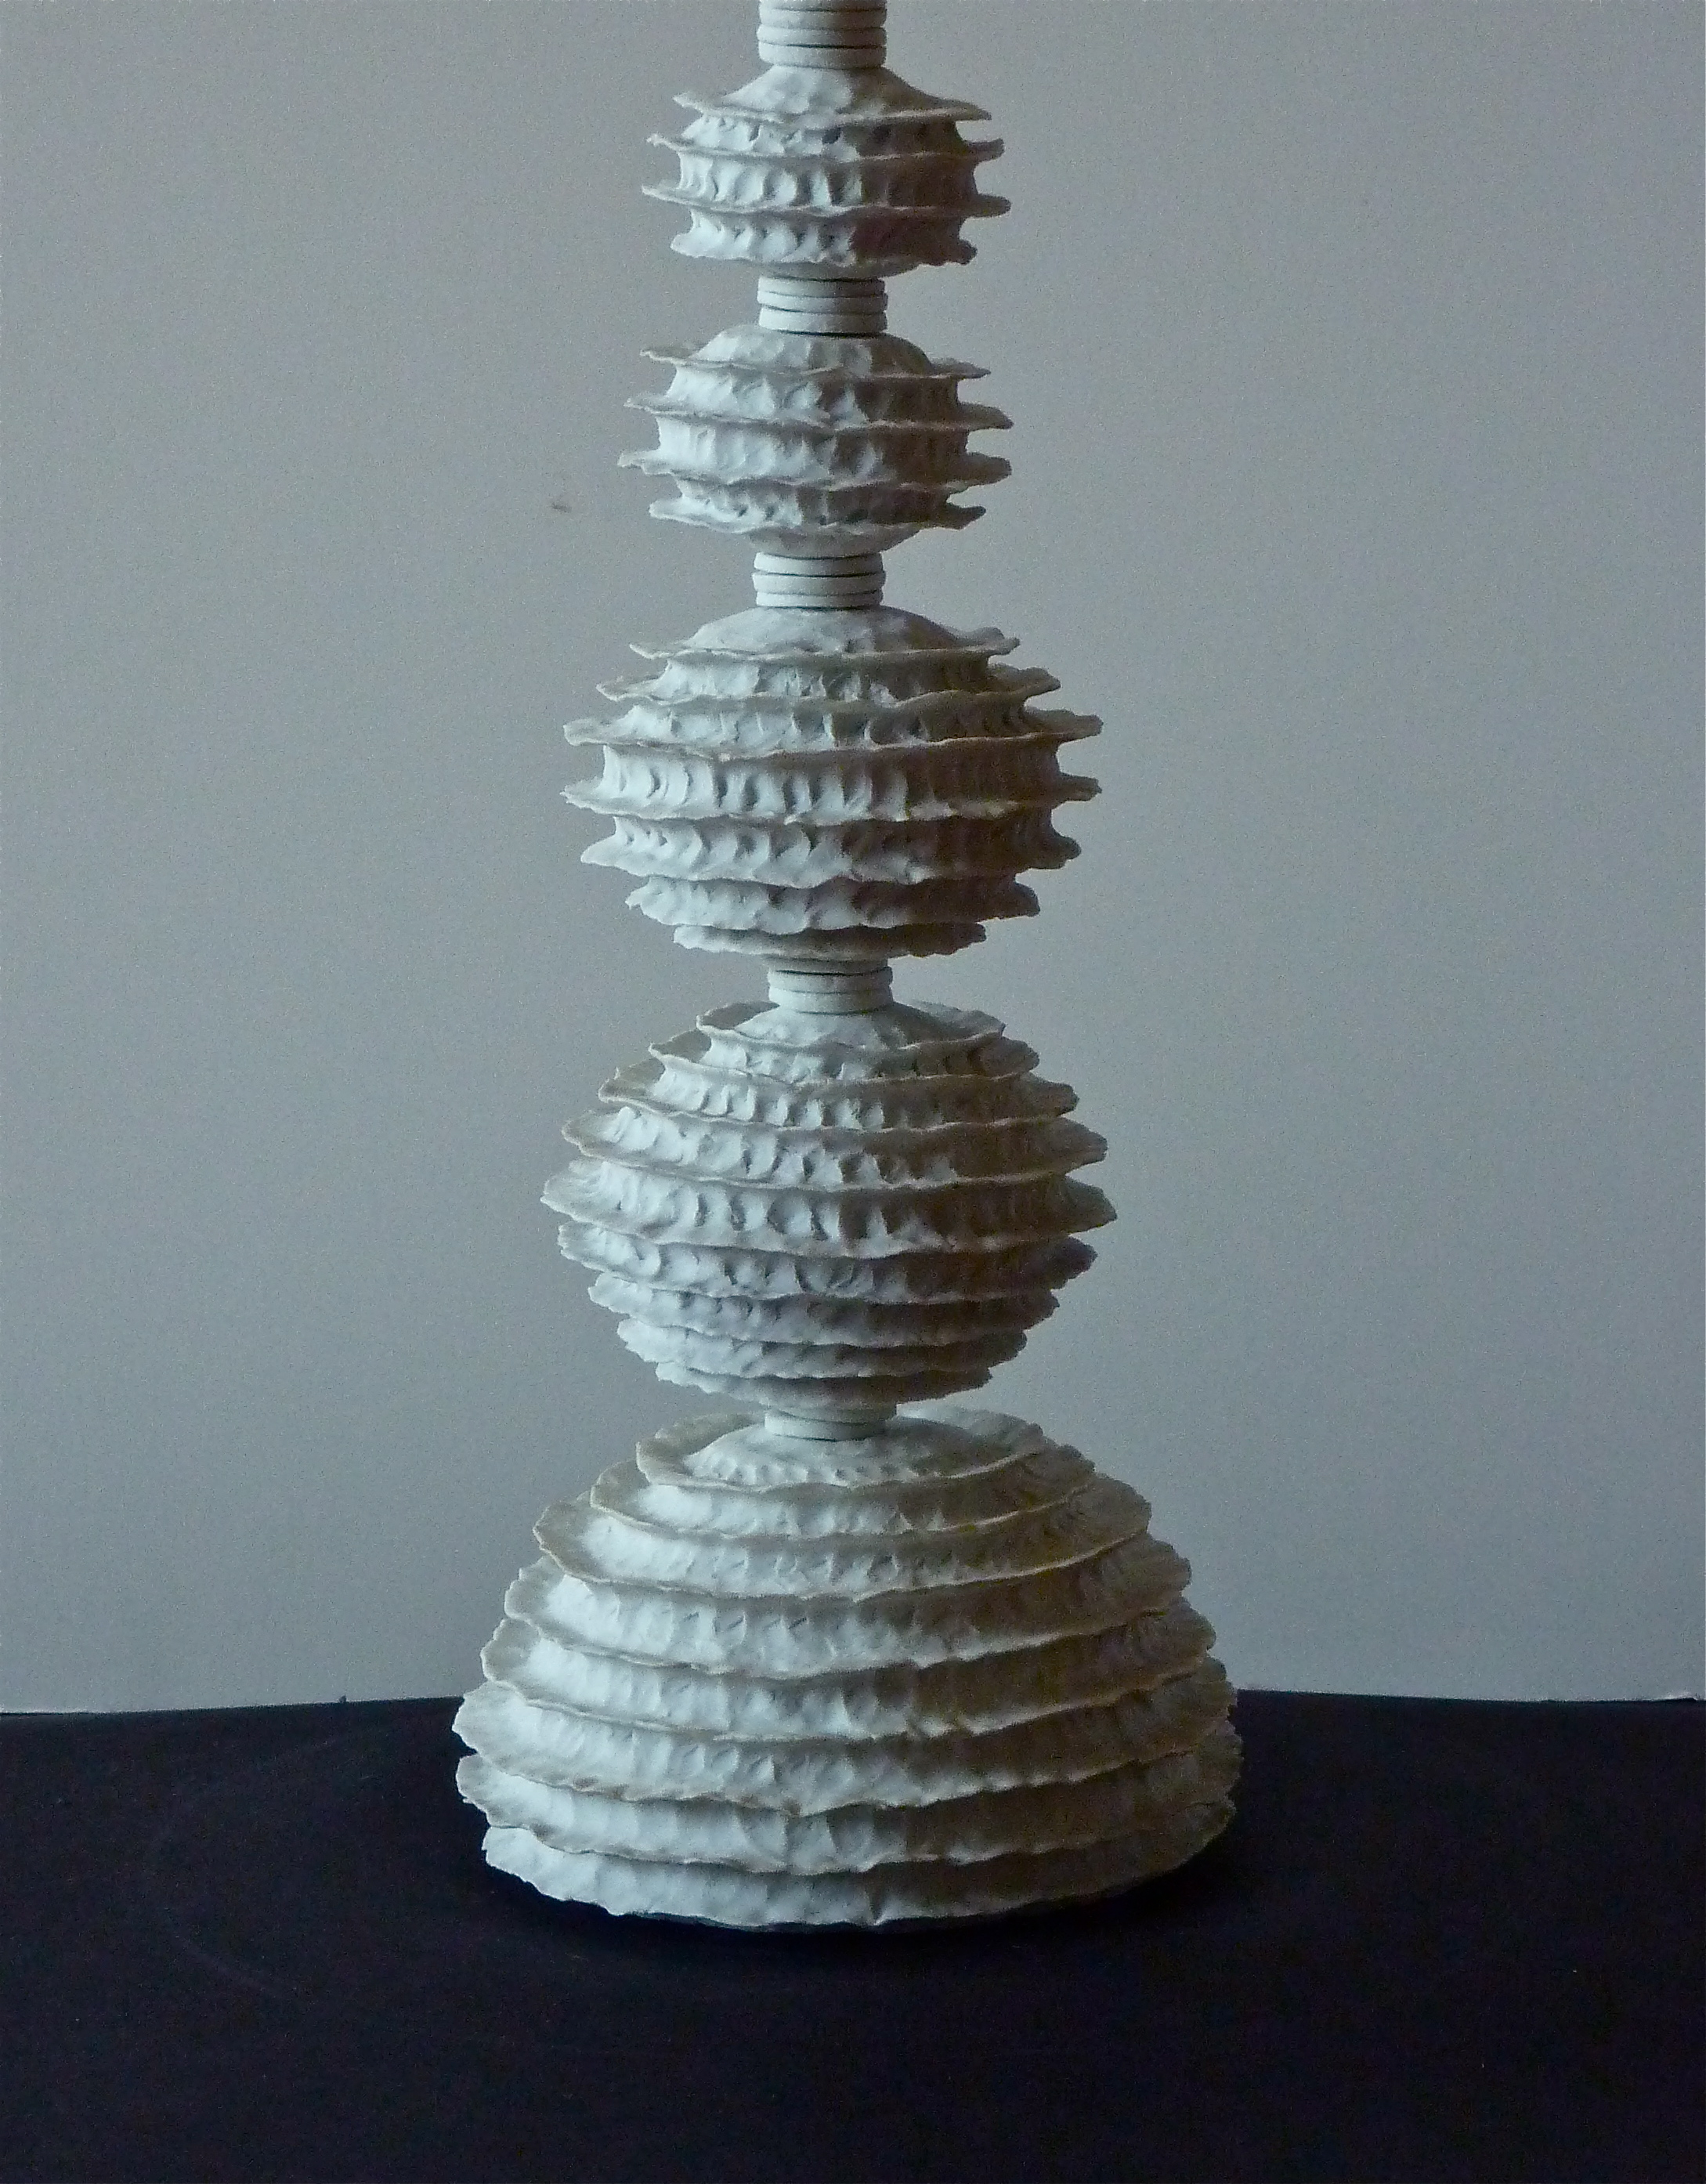 Raw Porcelain lamp, v.2